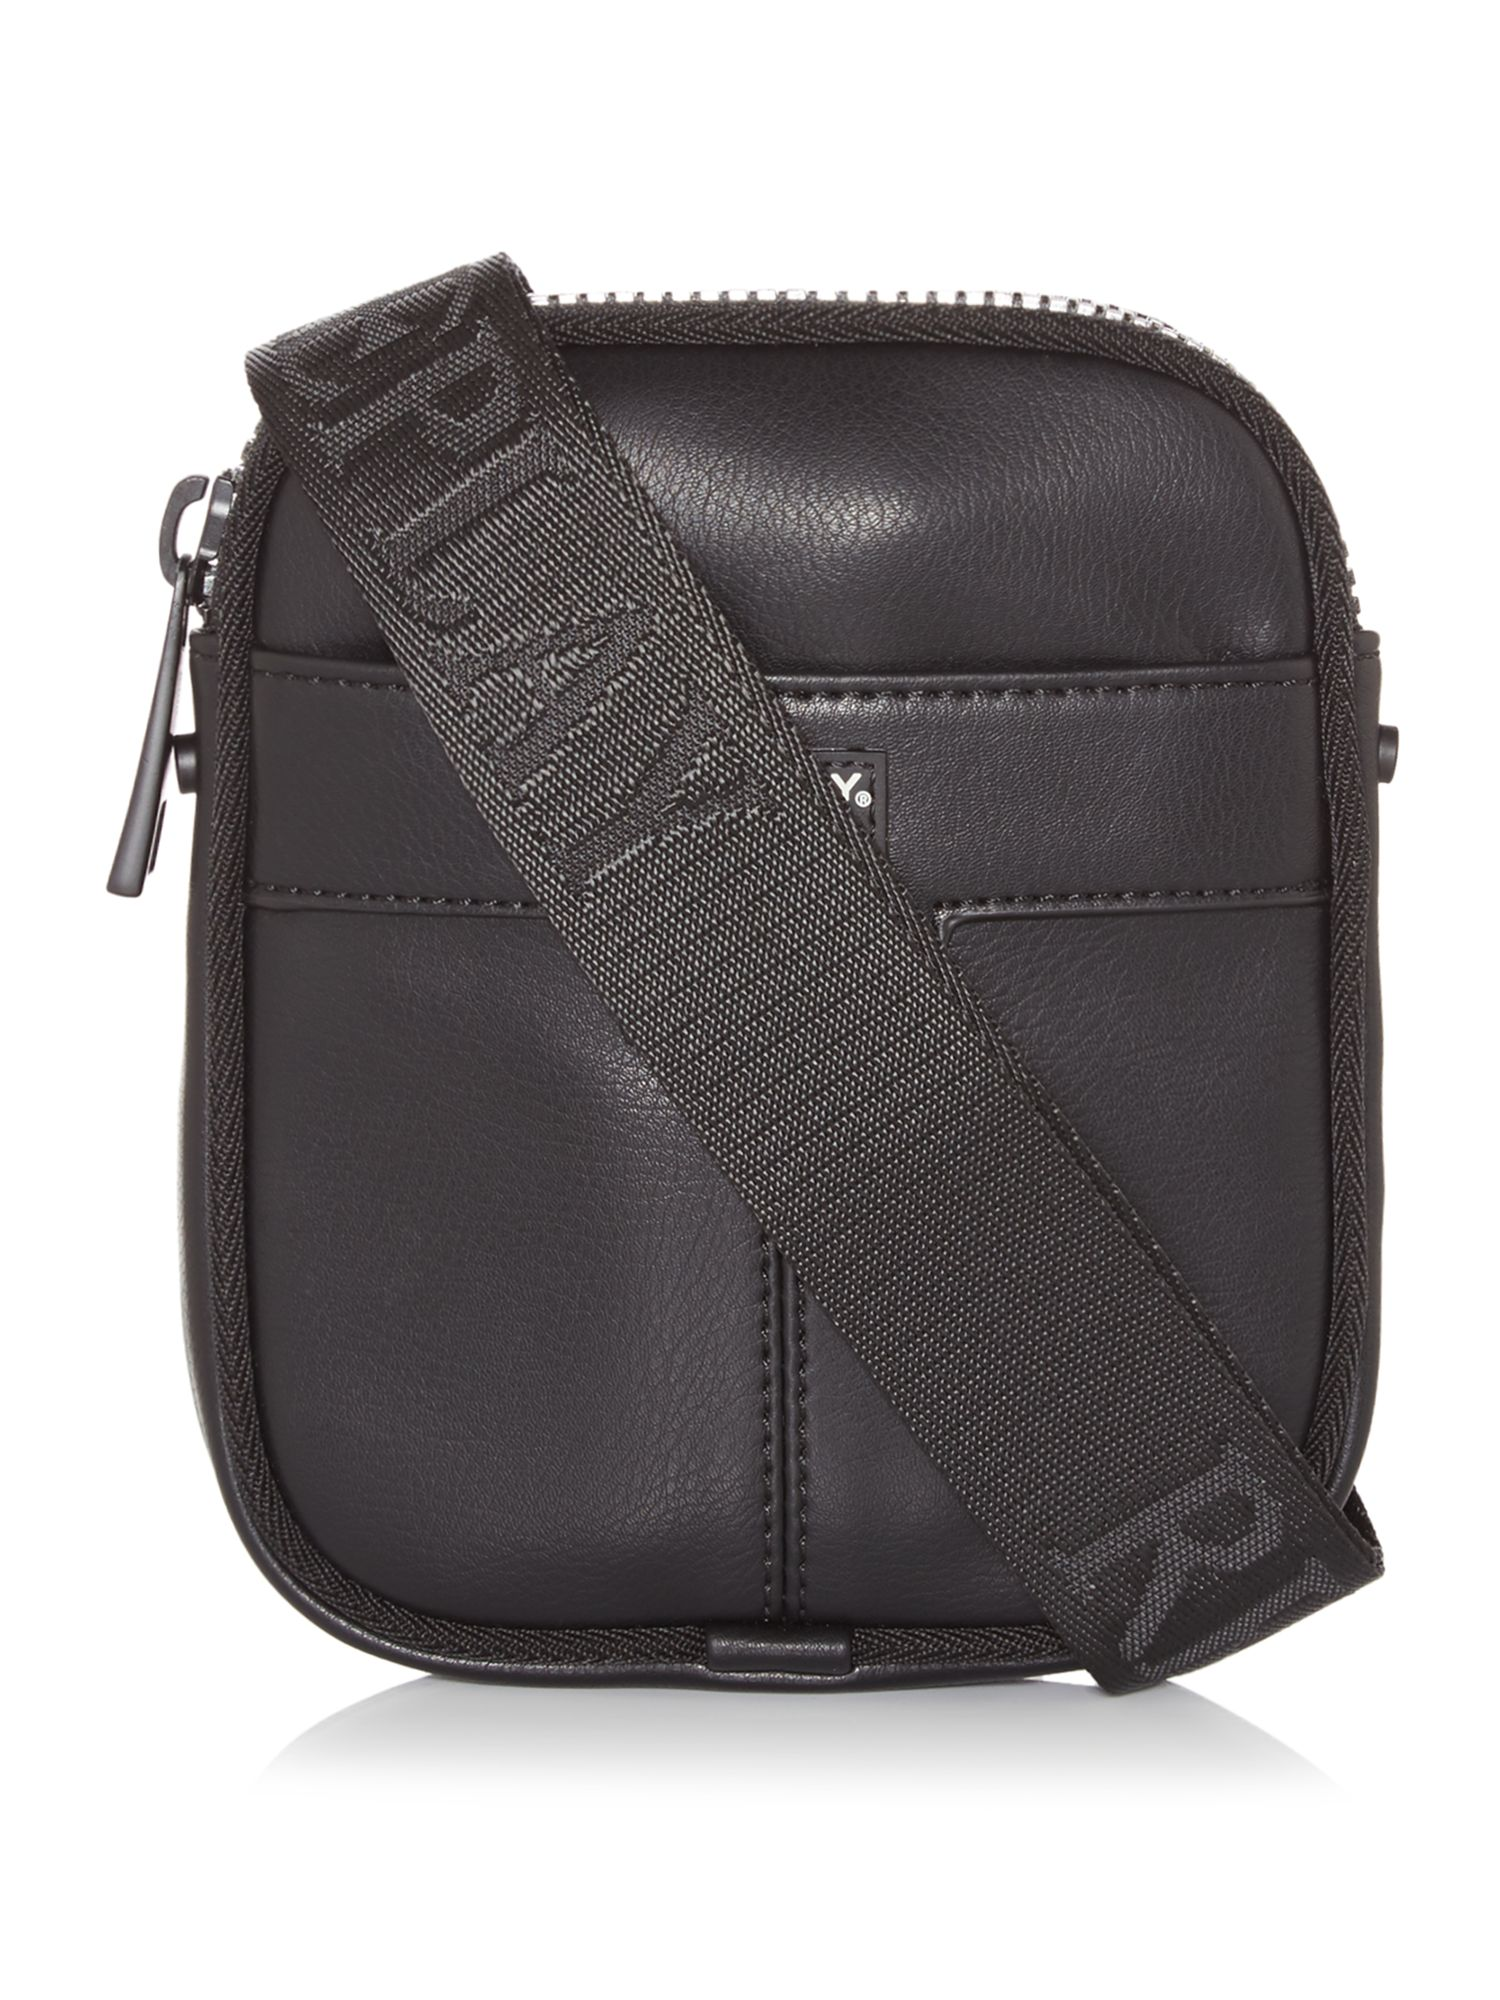 Replay Messenger Bag, Black